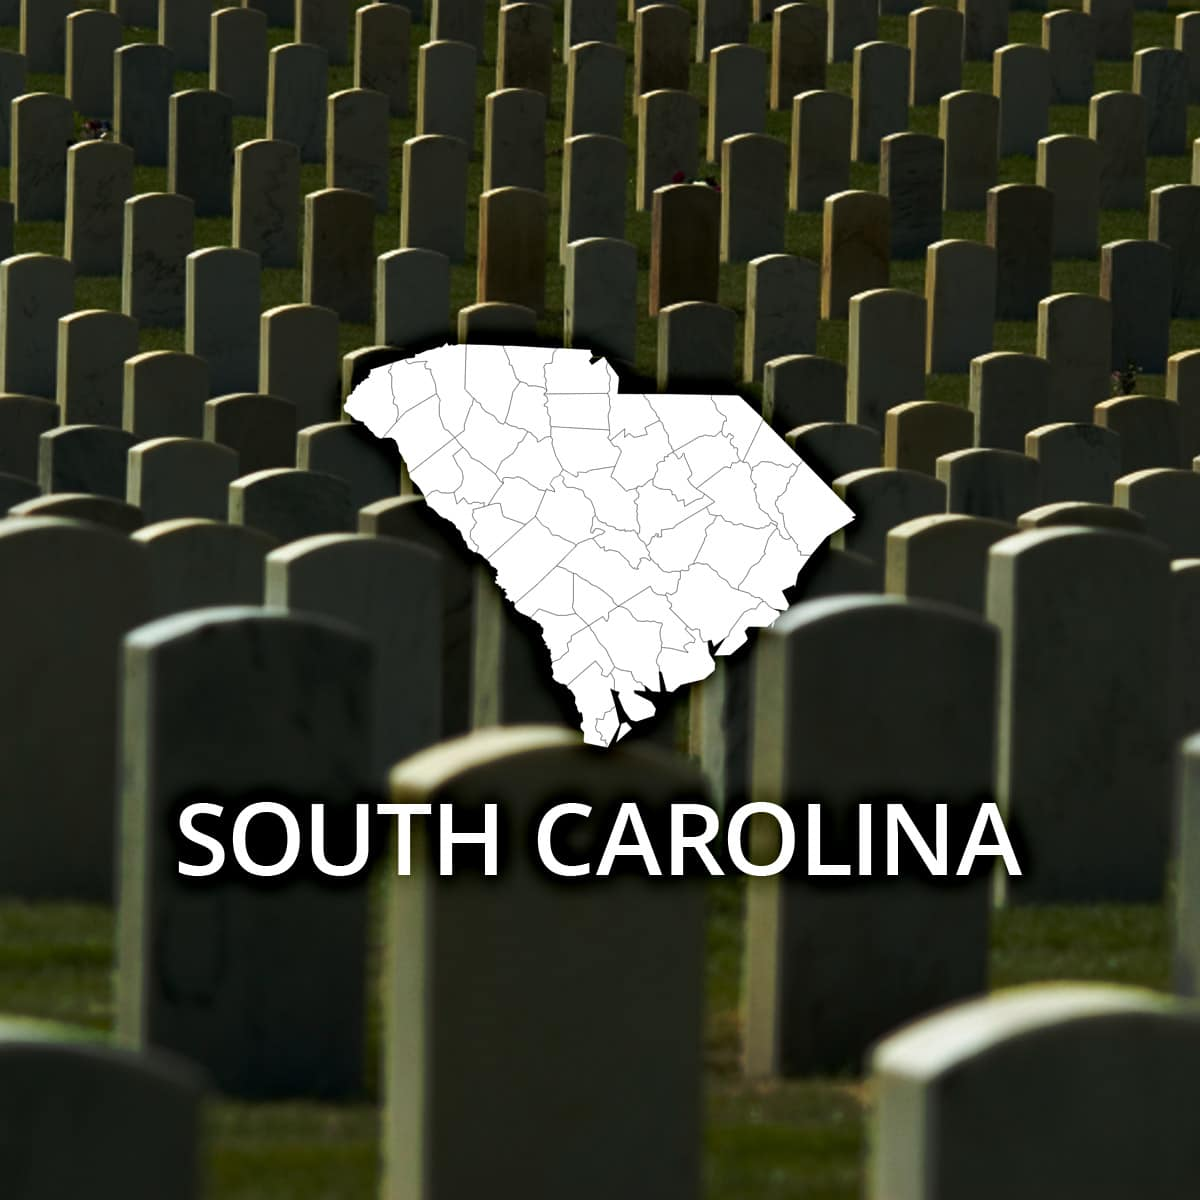 Where to Obtain a South Carolina Death Certificate